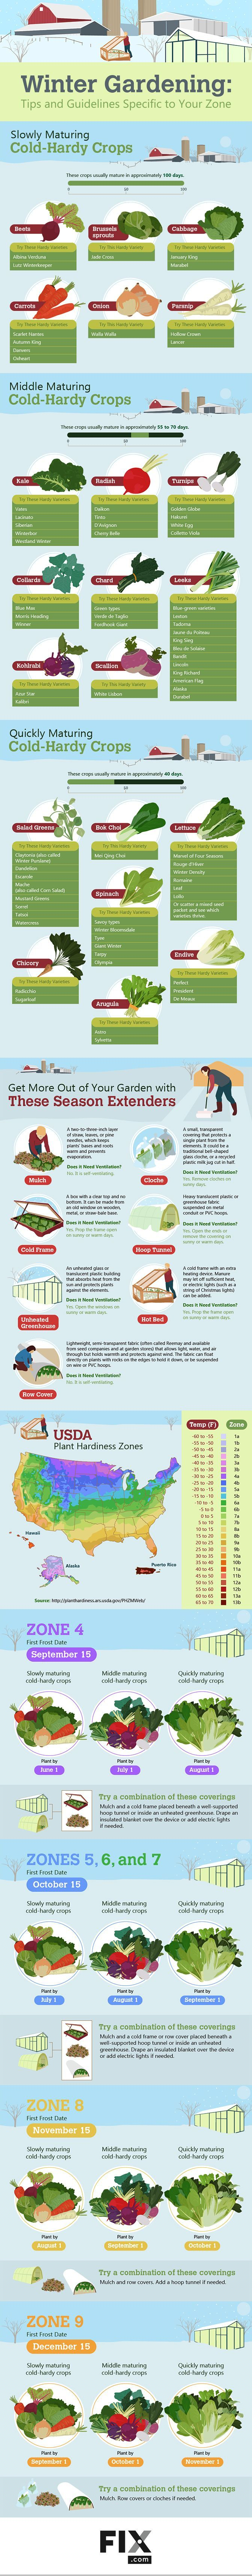 Just because winter is coming does not mean you are done gardening for the year. Follow this guide to winter gardening and keep crops going year round.